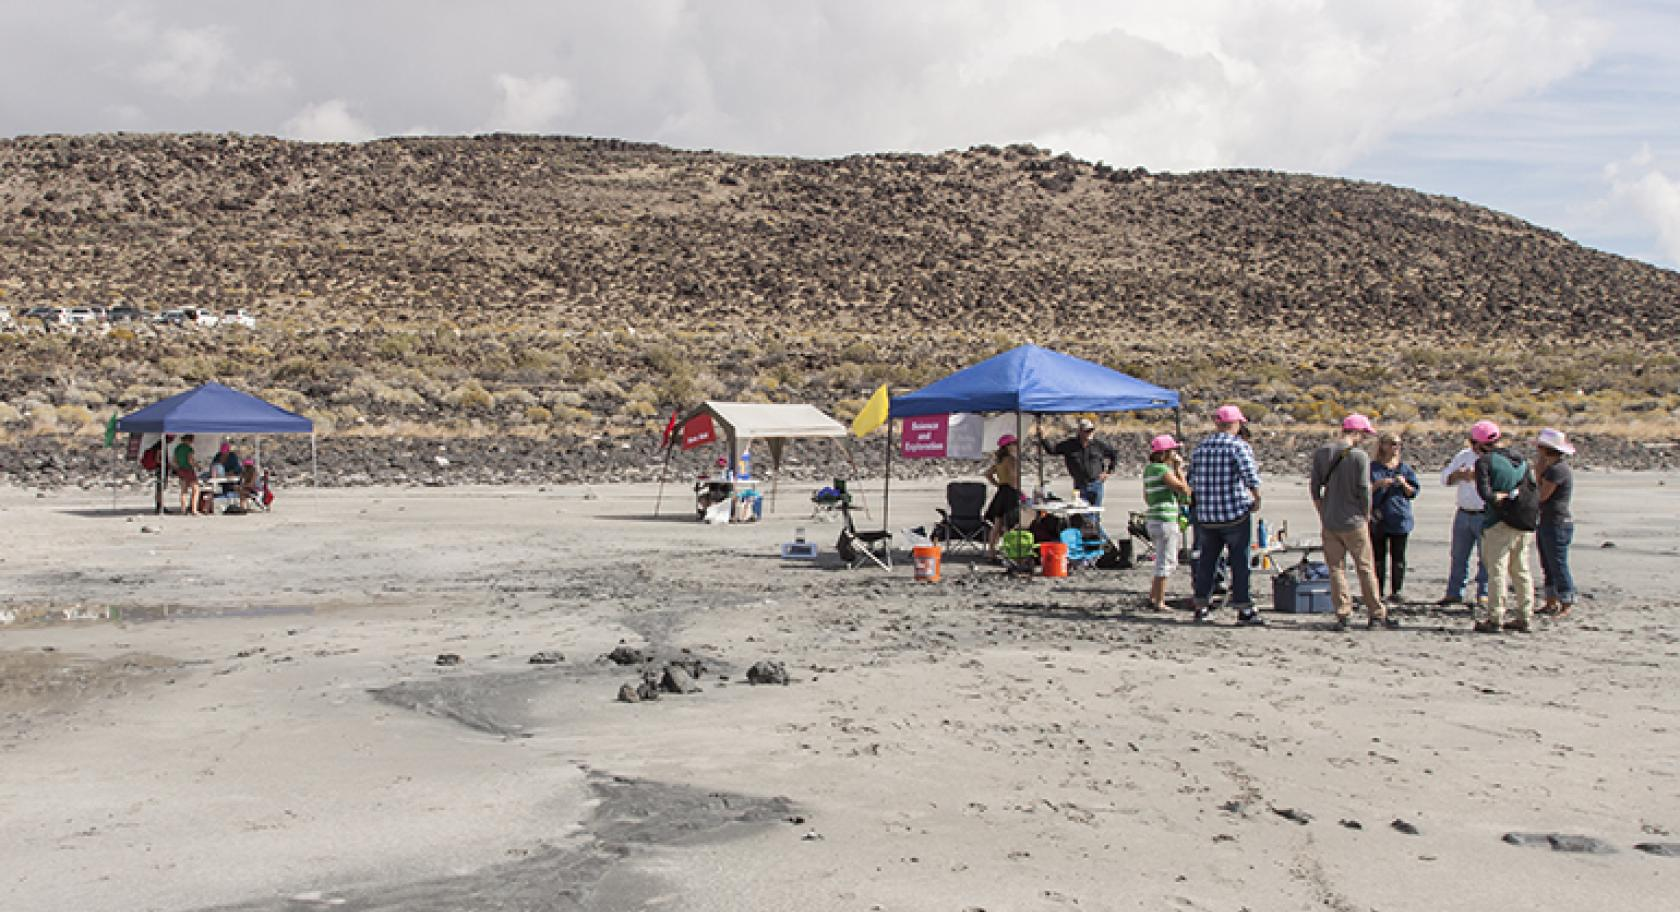 families gather at the Spiral Jetty at a Utah museum of Fine Arts meetup in 2015